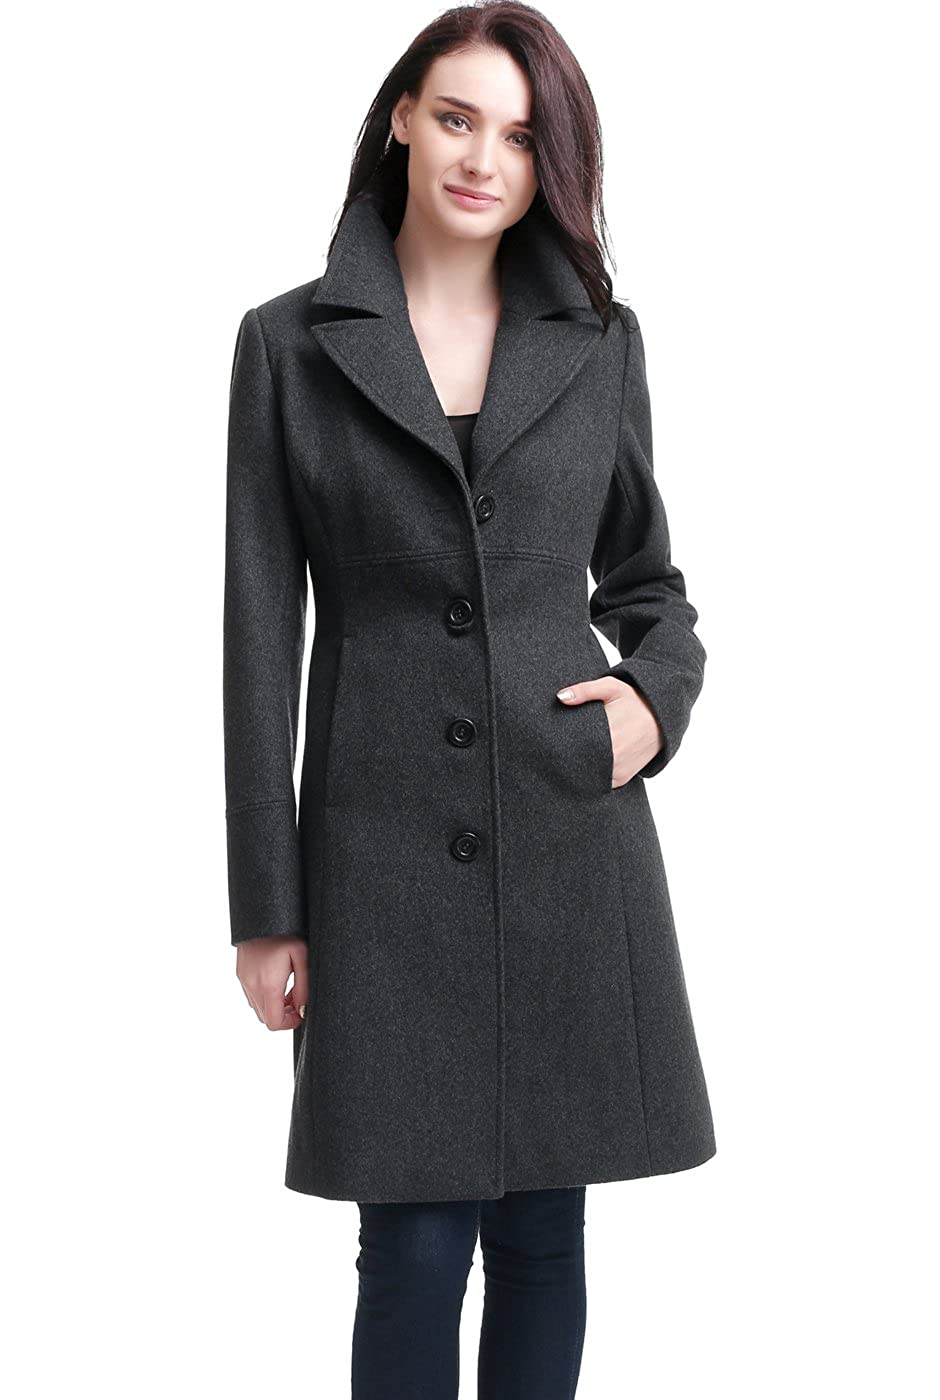 BGSD Women's 'Joan' Wool Blend Walking Coat (Regular & Plus Size)